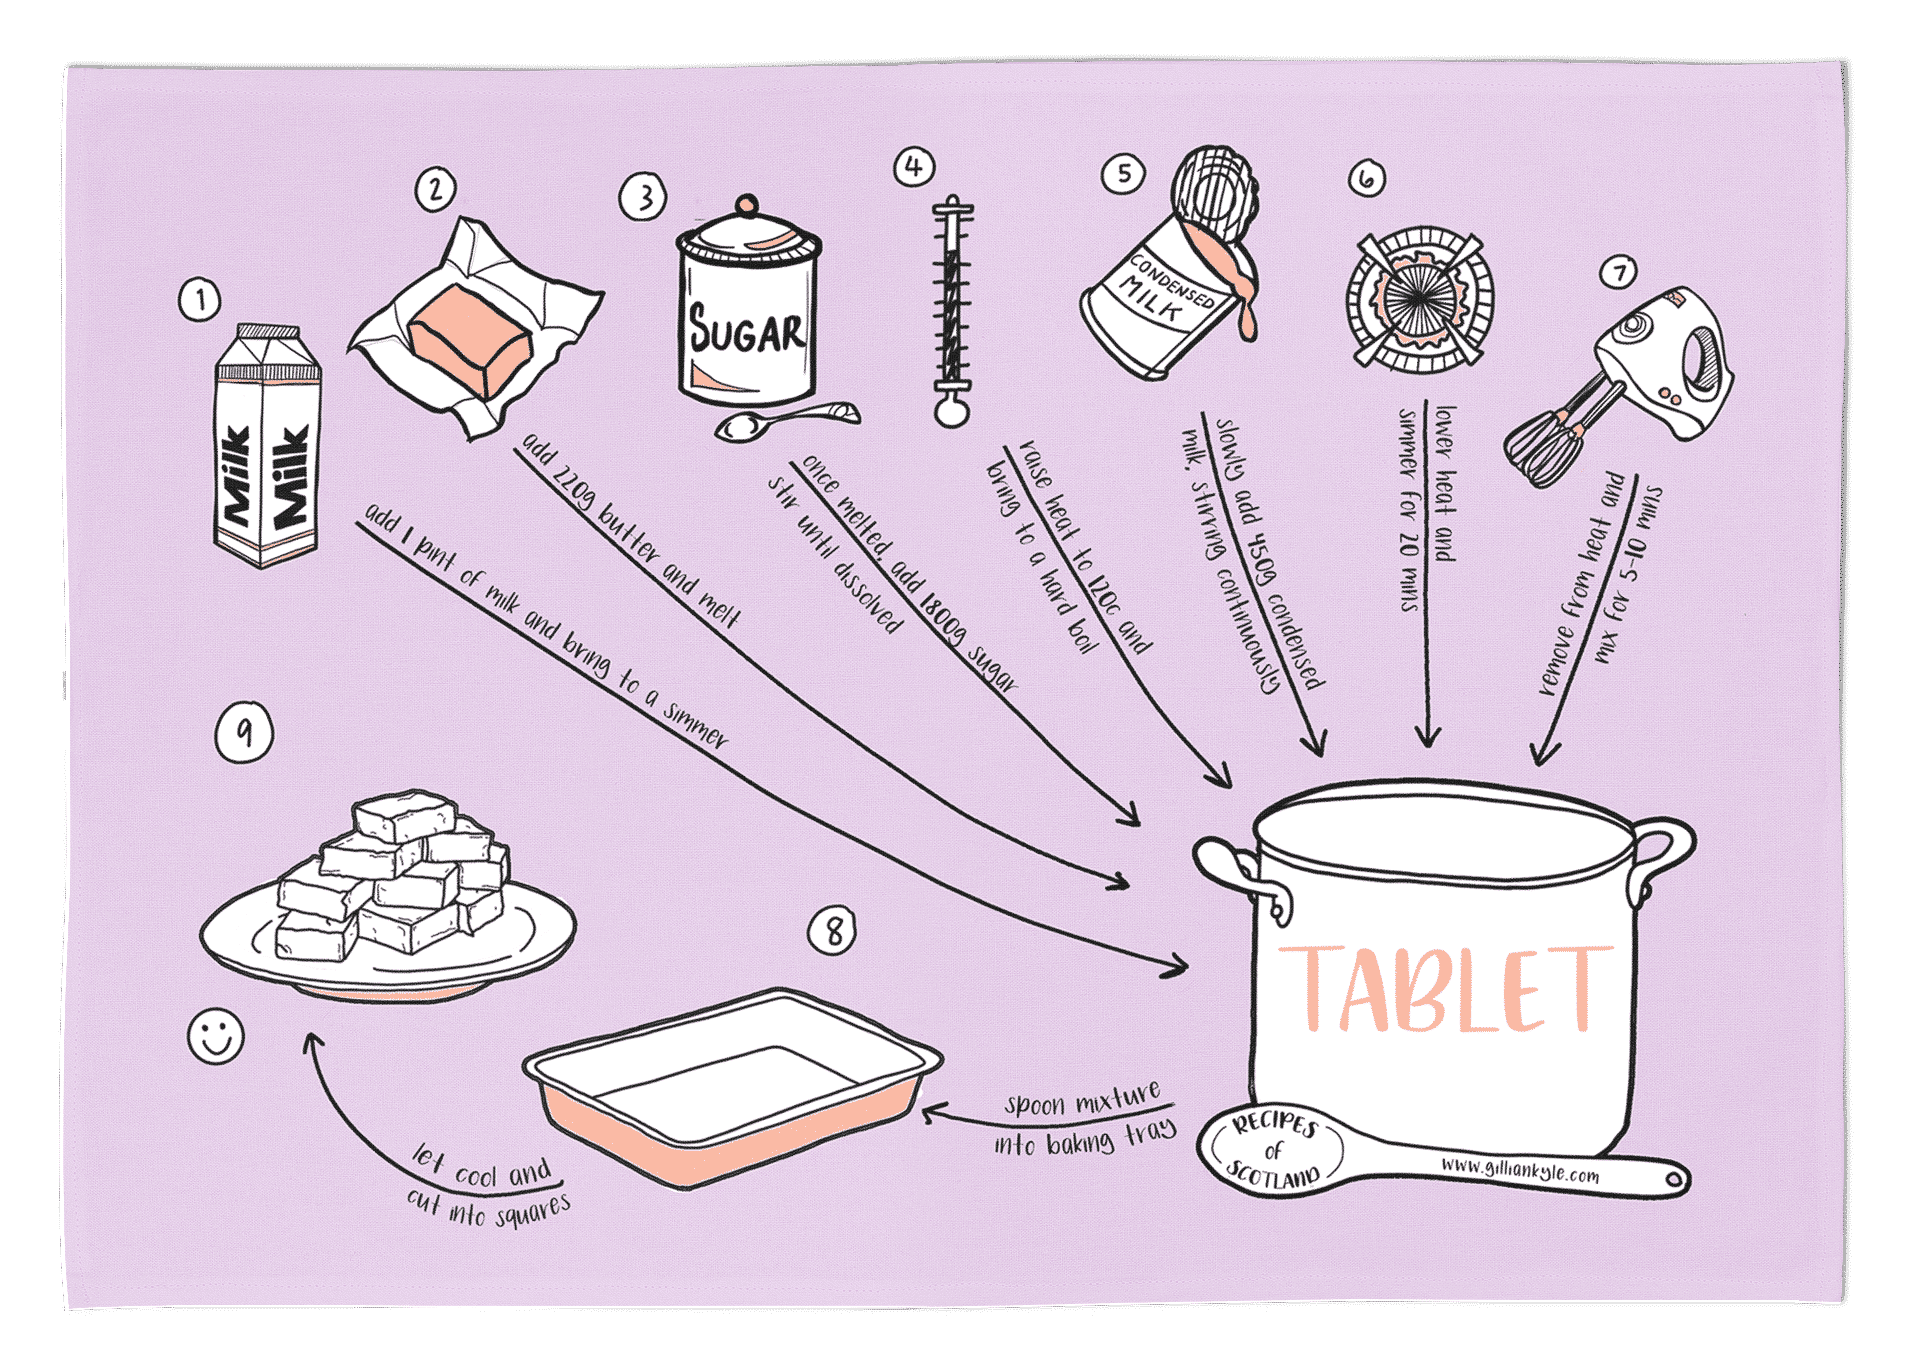 illustrated tablet recipe